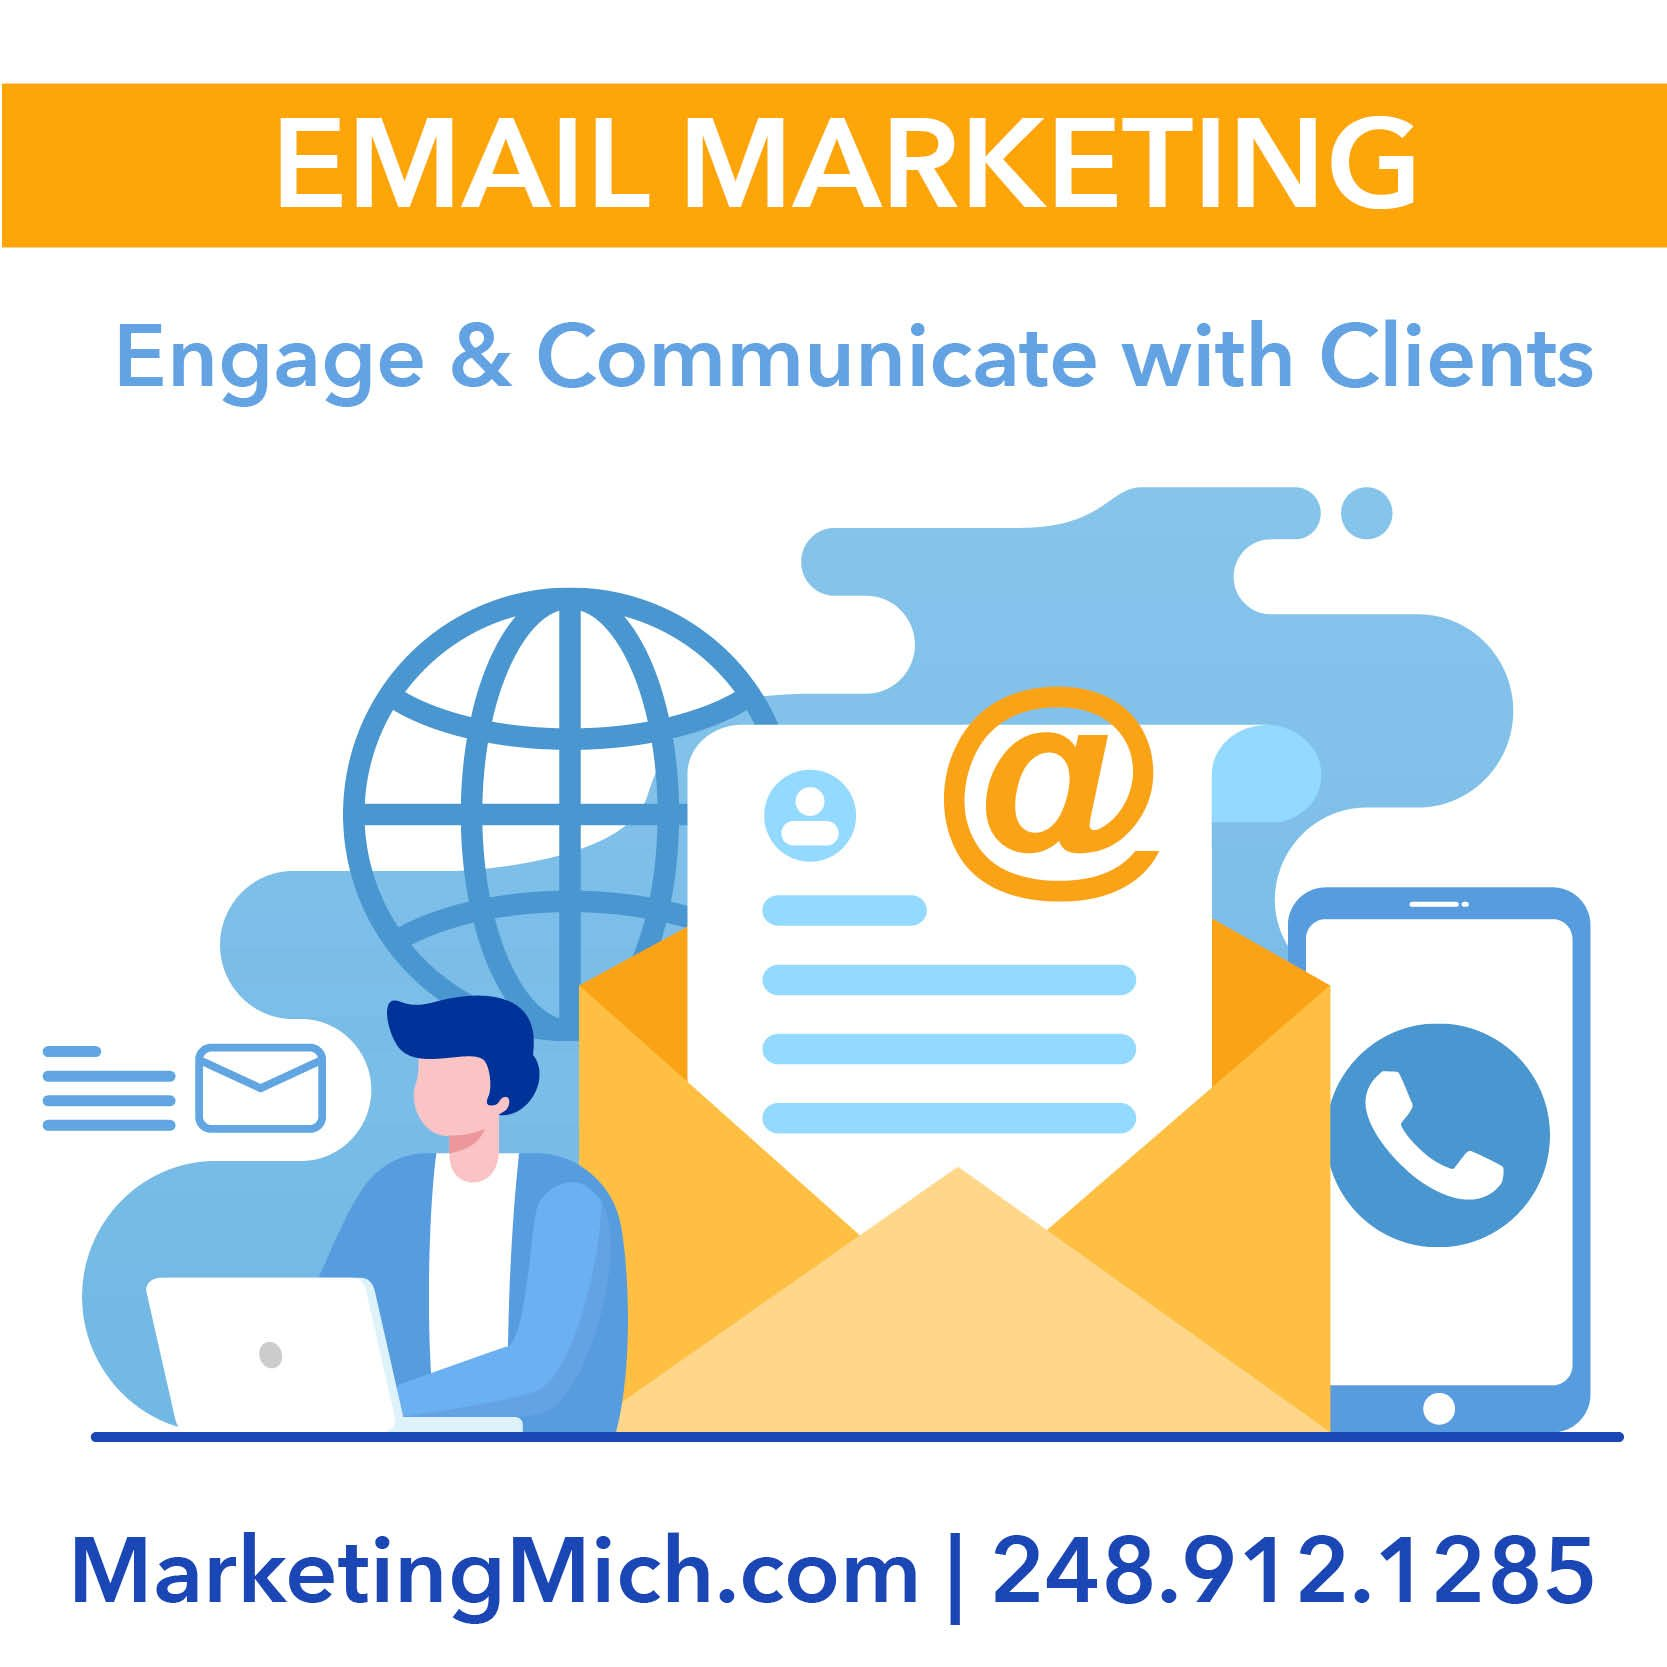 Seven Email Marketing Tips for Any Business